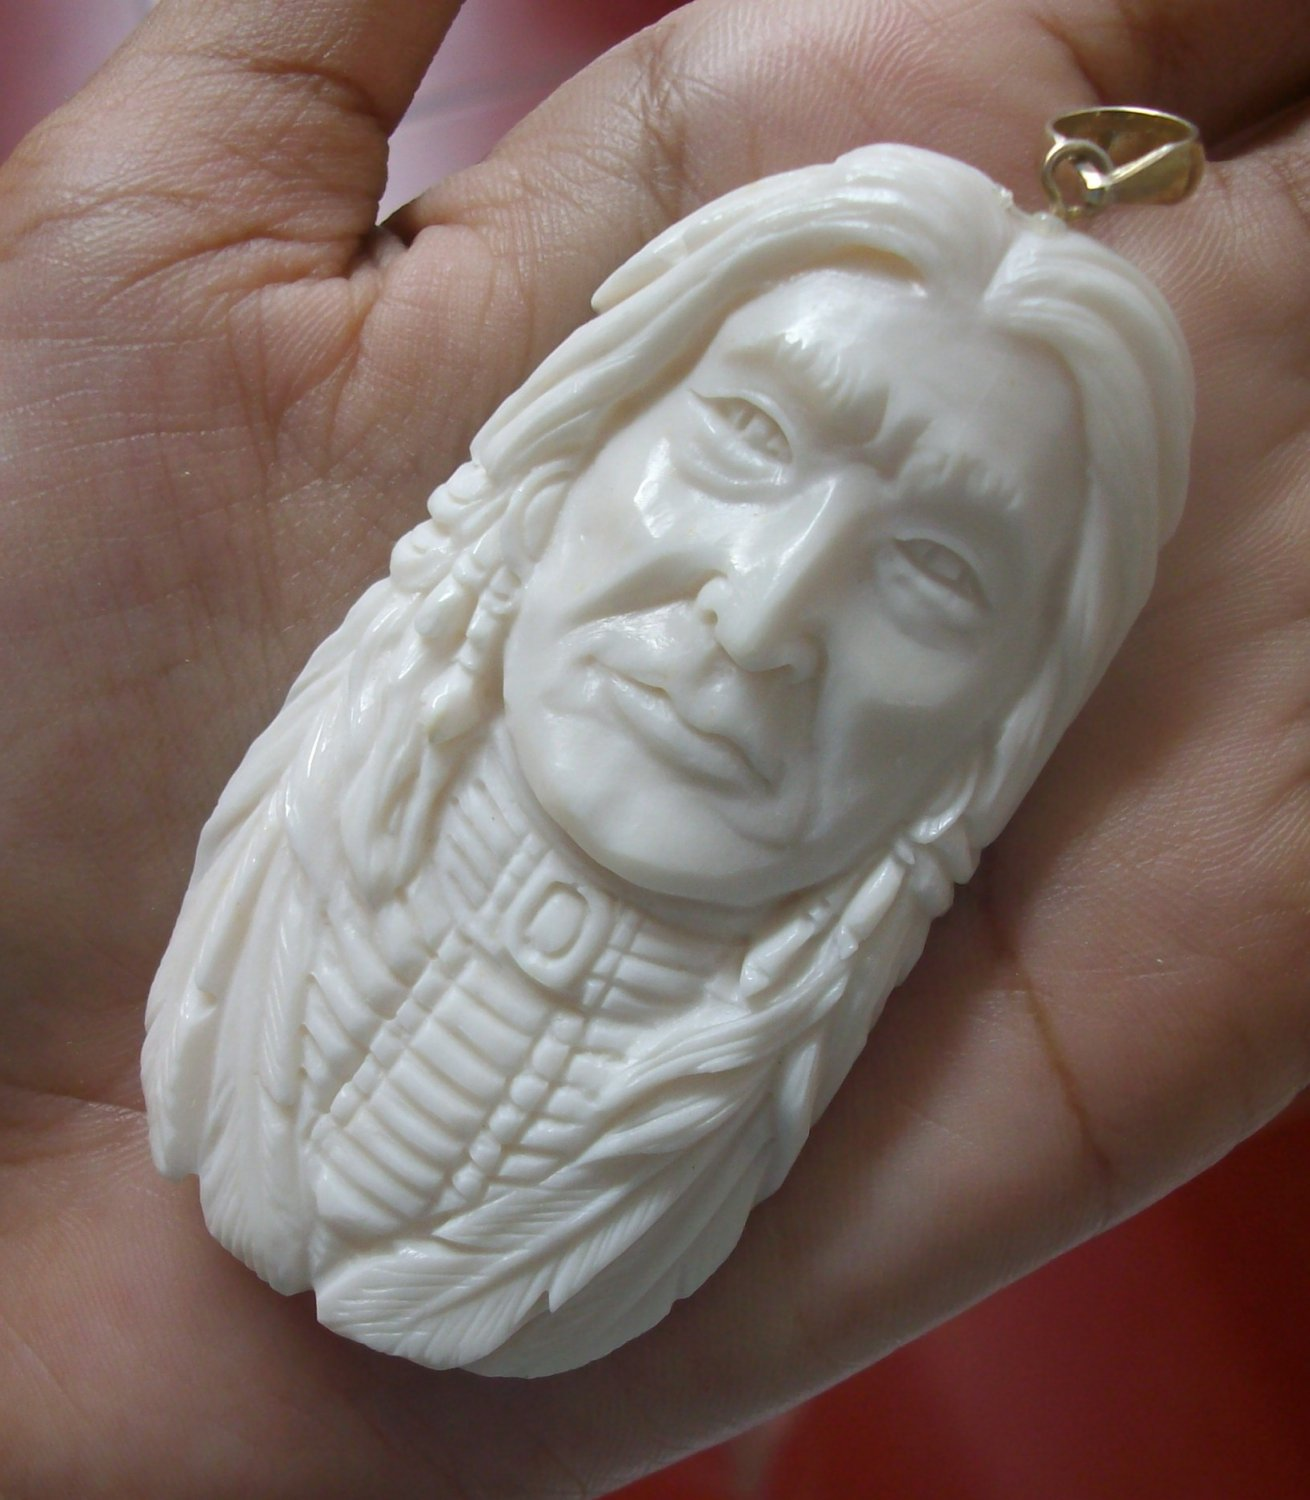 Bali Pendant Necklace INDIAN FACE Old From Buffalo Bone Carving With Silver Bail 925 #r169